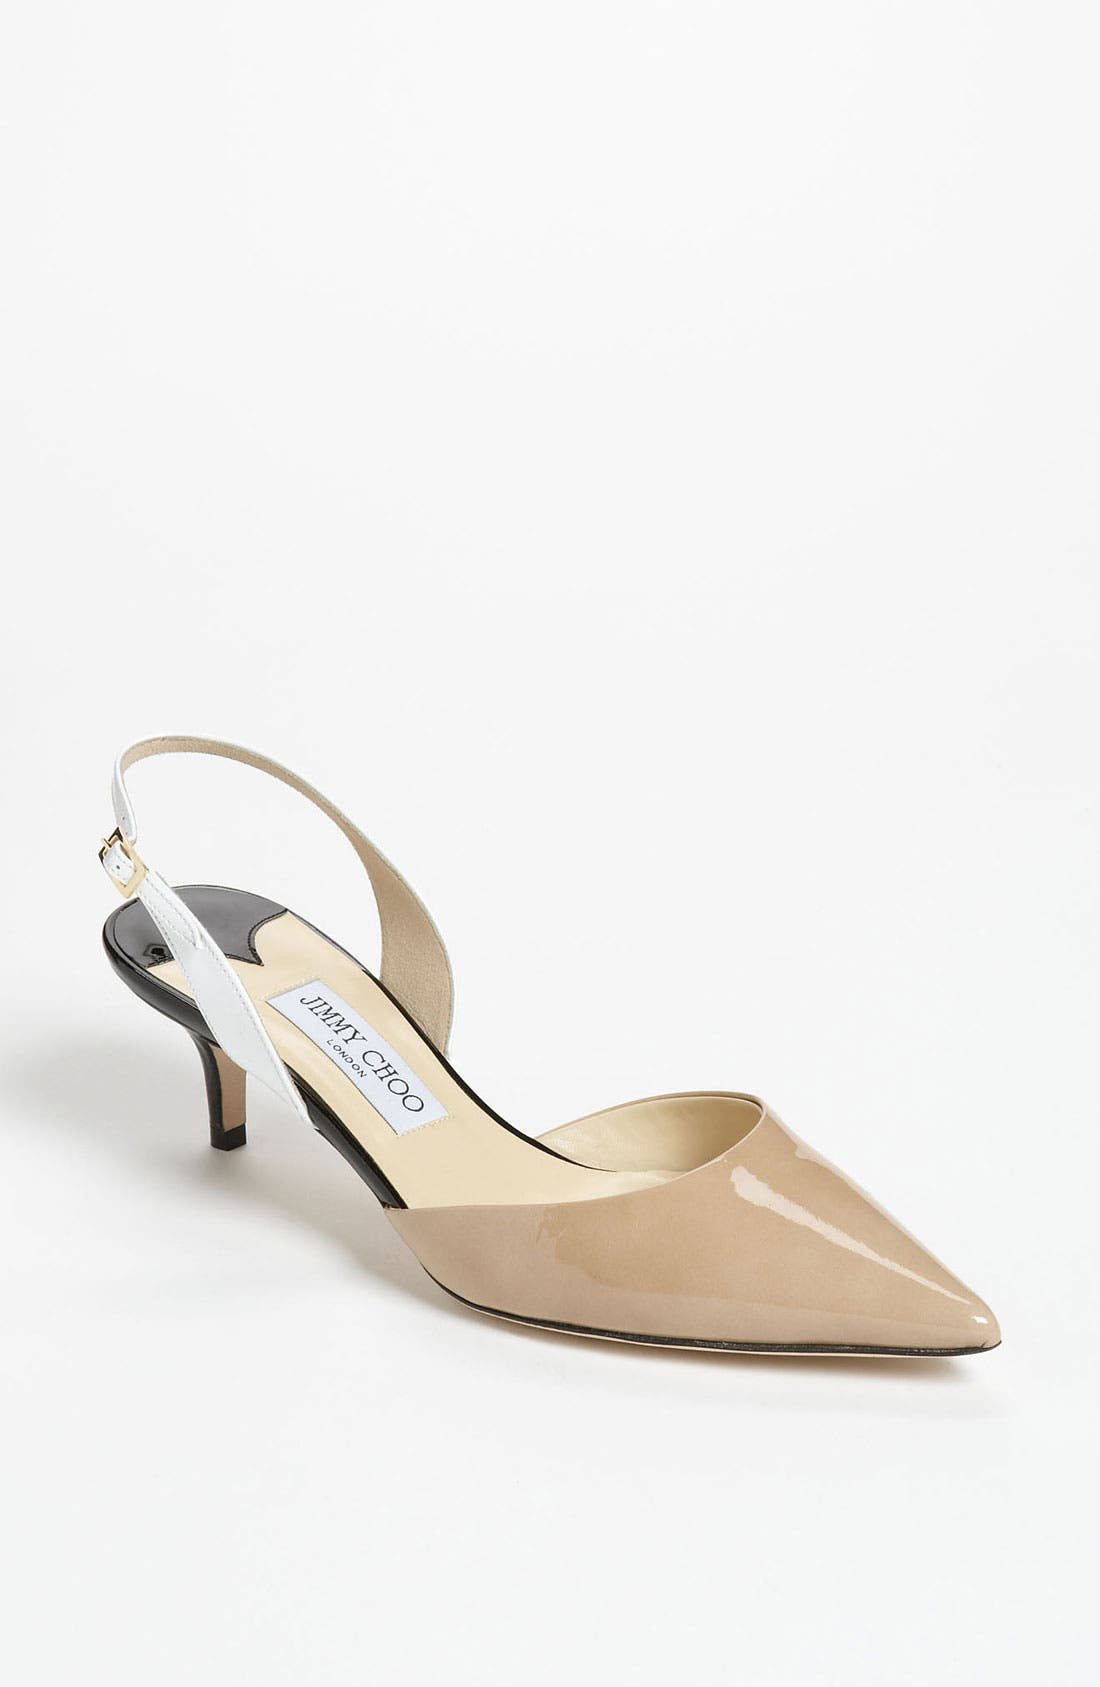 Alternate Image 1 Selected - Jimmy Choo 'Varia' Pump